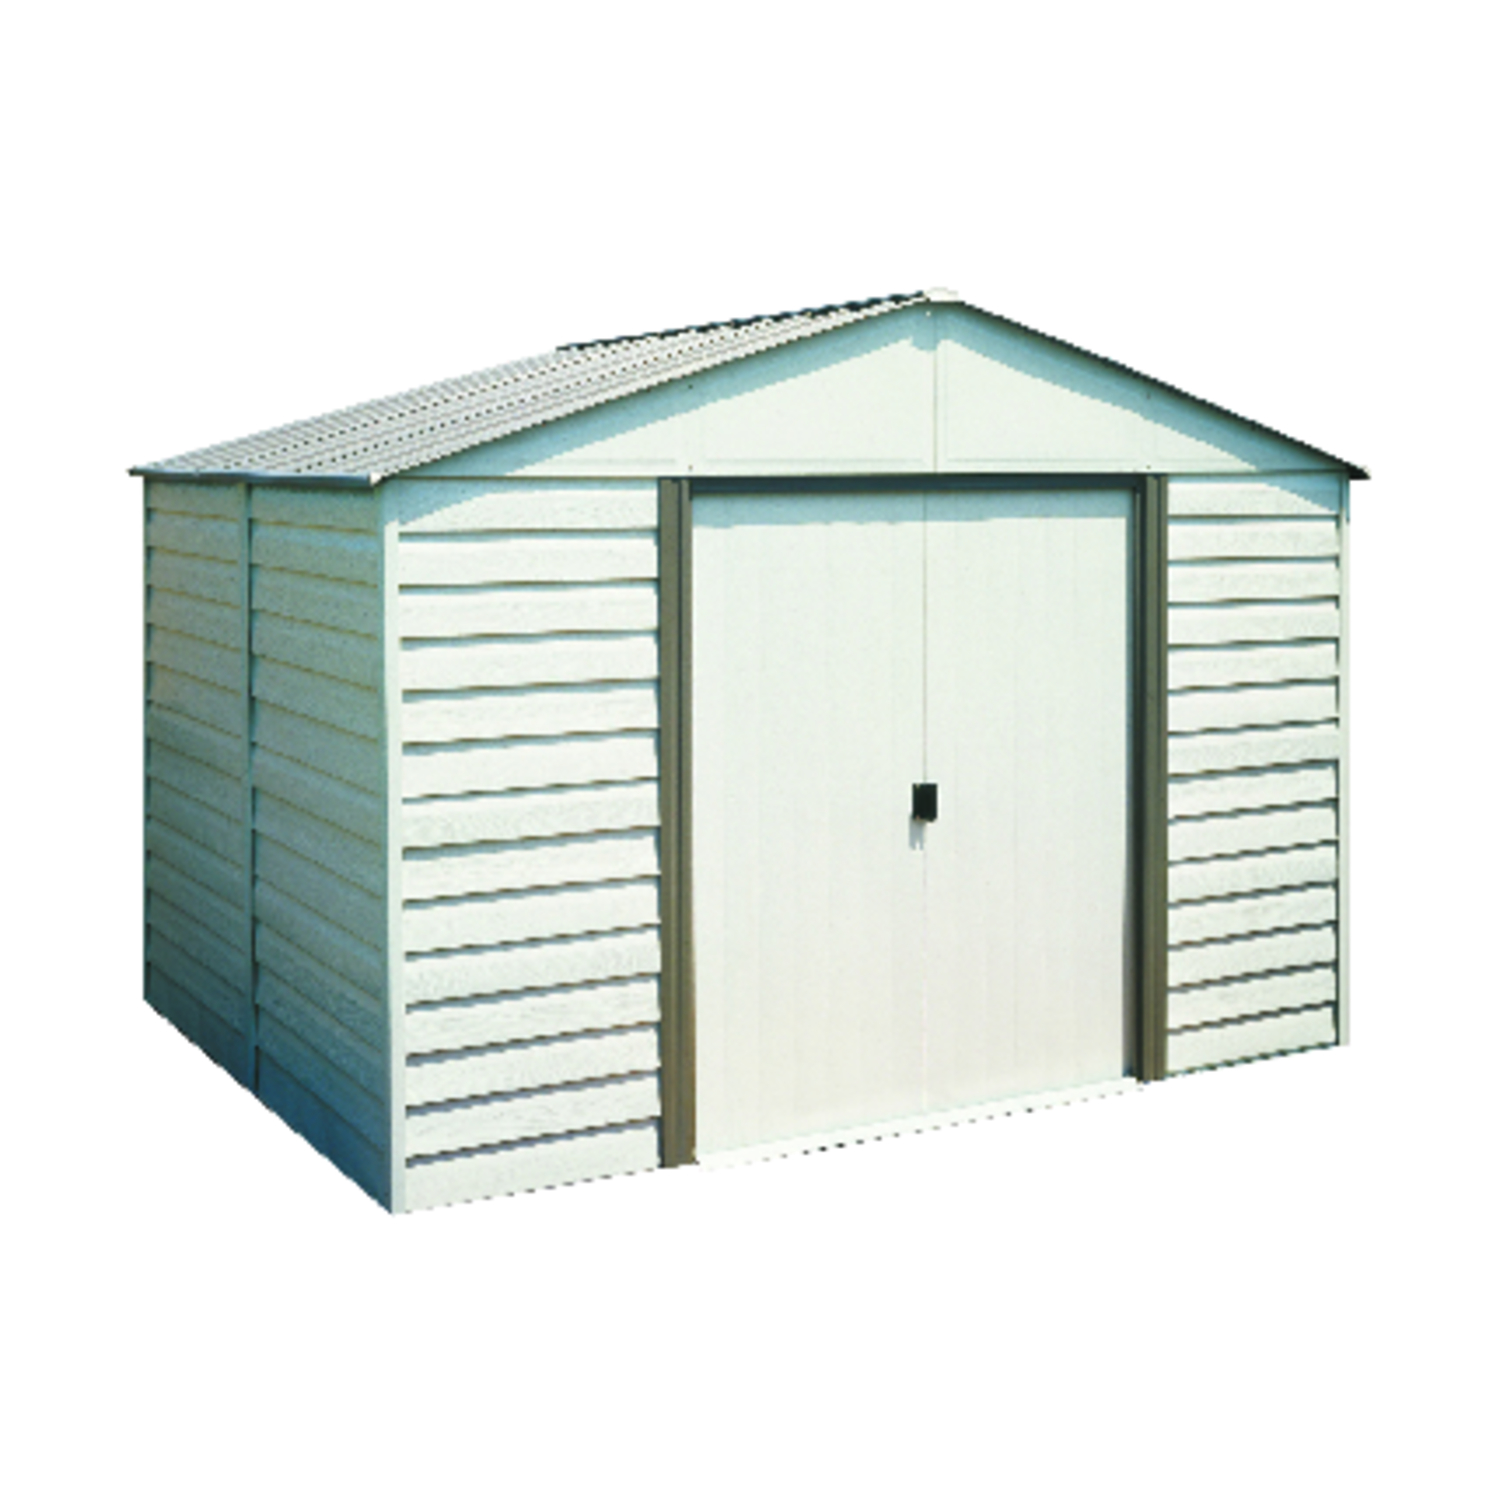 Attractive, horizontal siding combines with a vinyl coating to give you a handsome and durable storage solution. A roomy, gable roof allows for plenty of headroom with space to work, hang tools and store equipment.